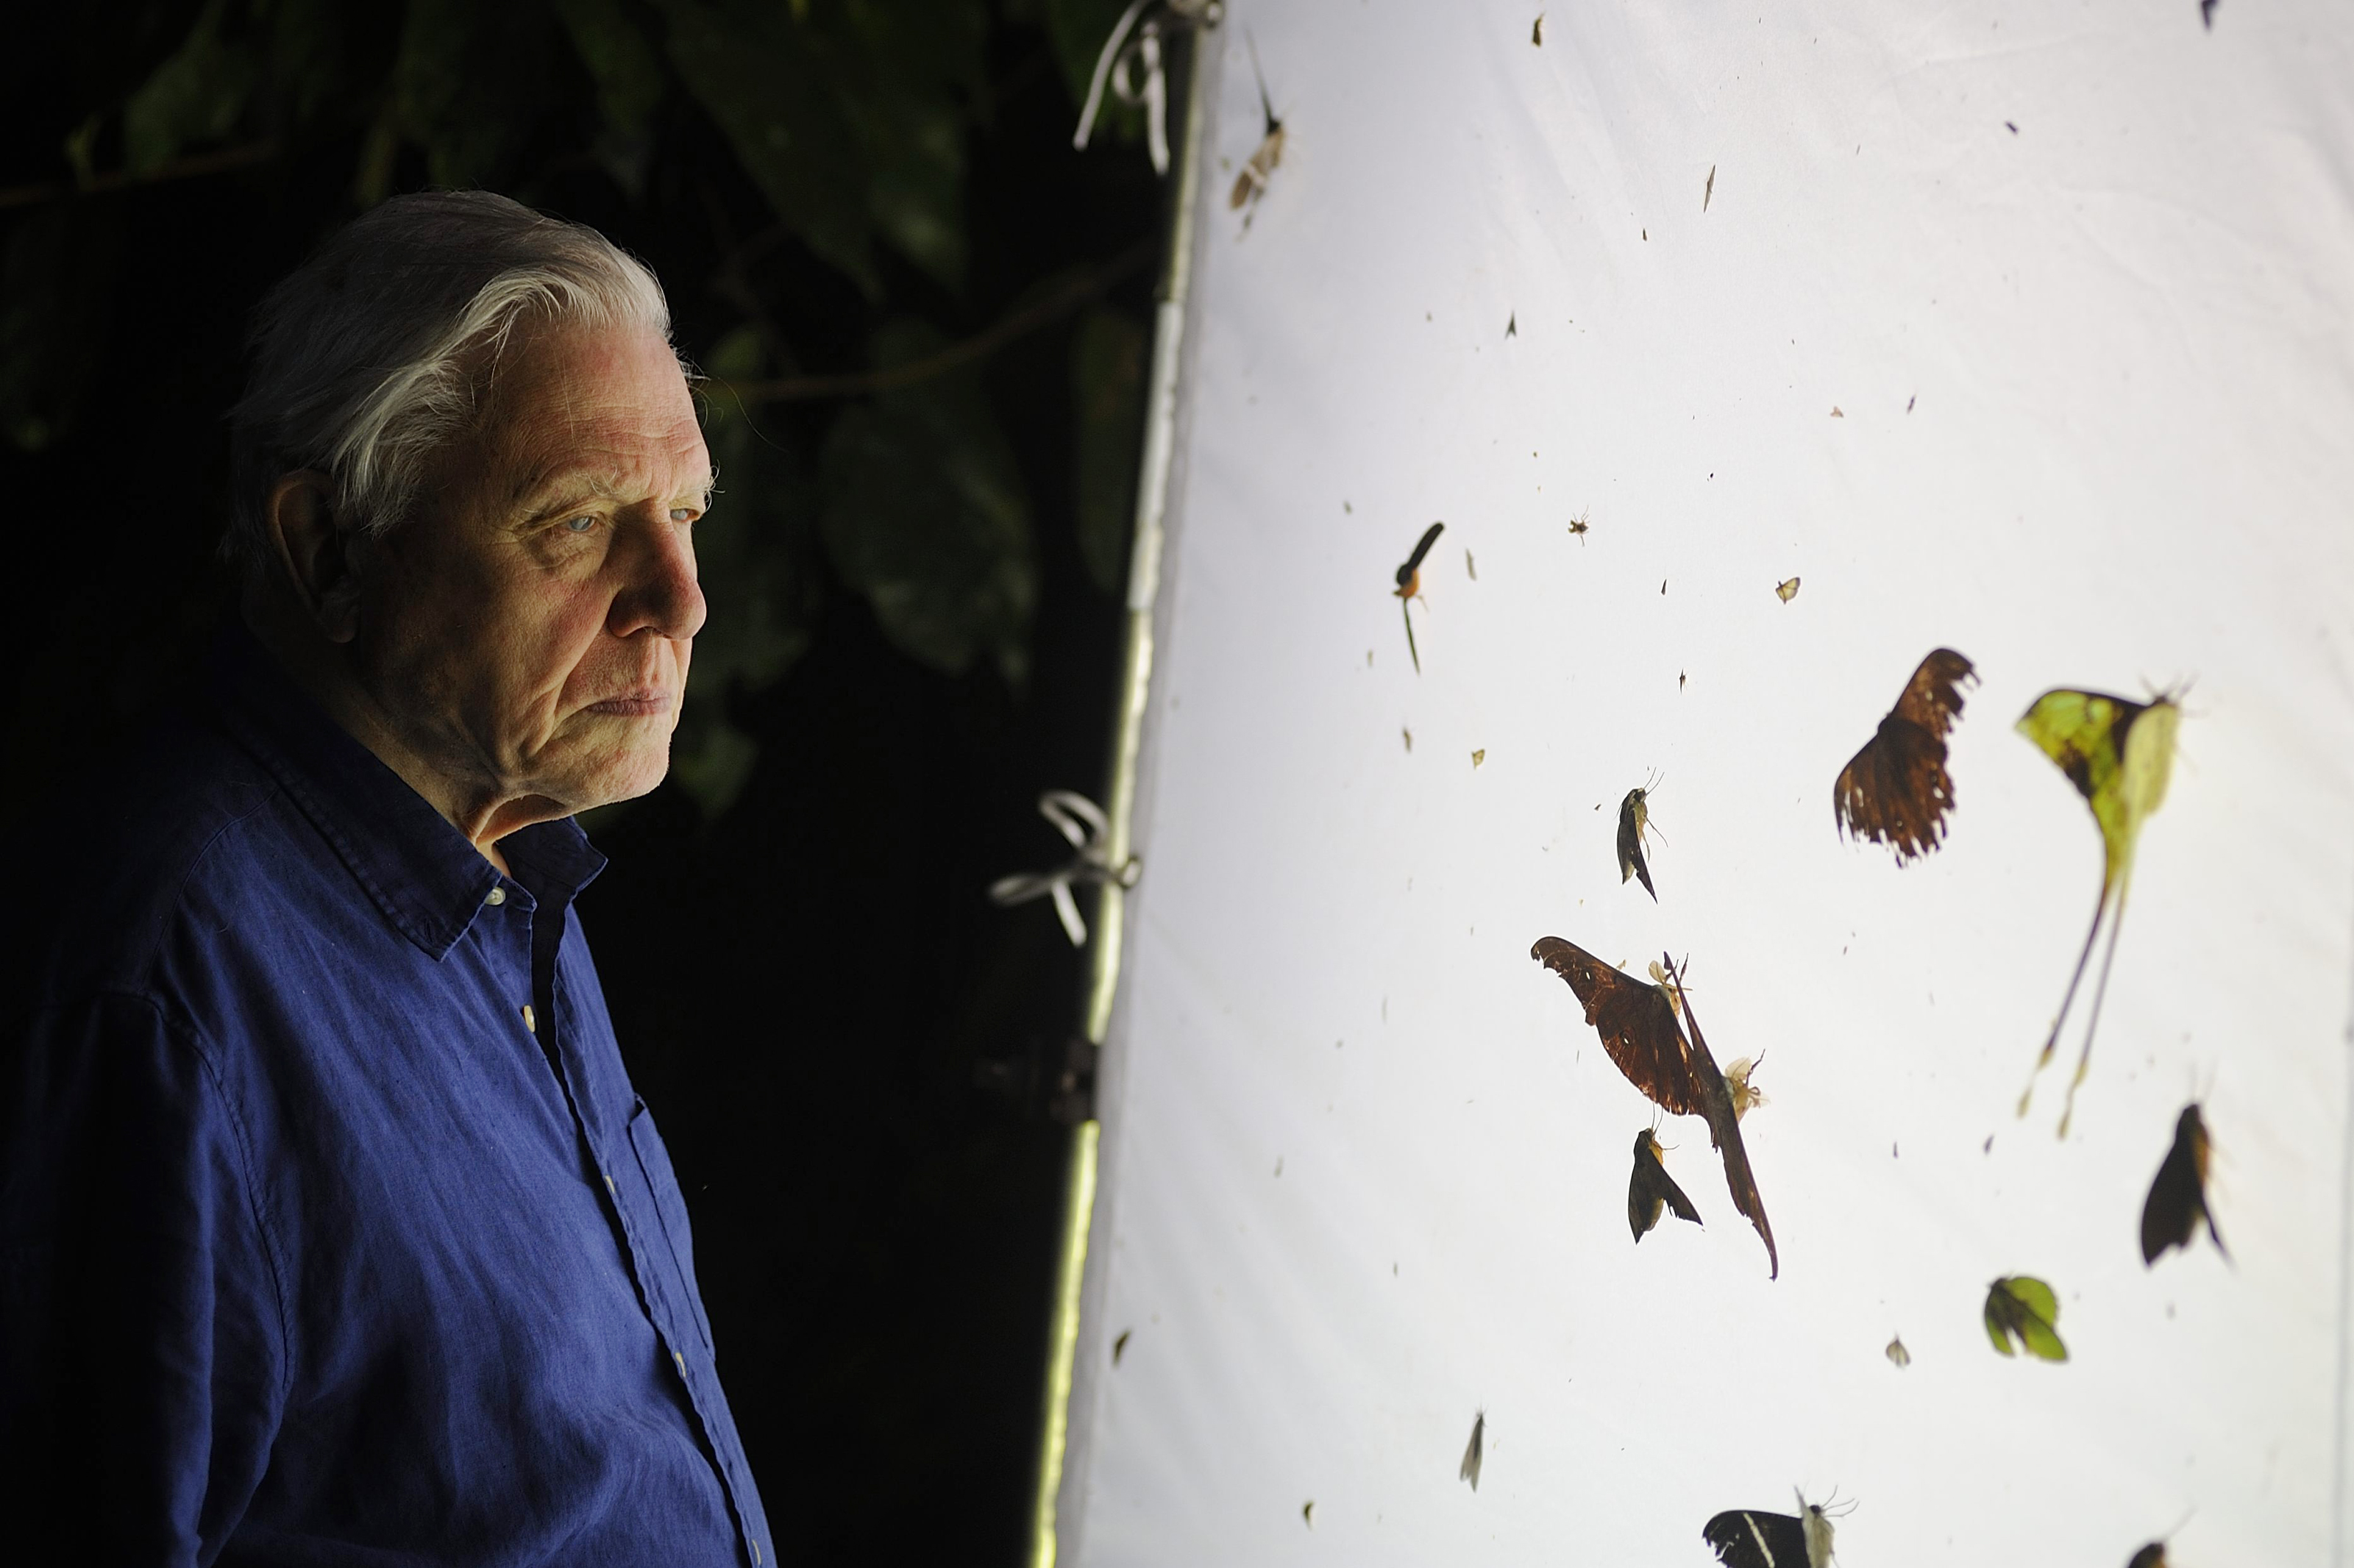 Attenborough examines nocturnal insects while on location in Borneo. Credit: Colossus Productions